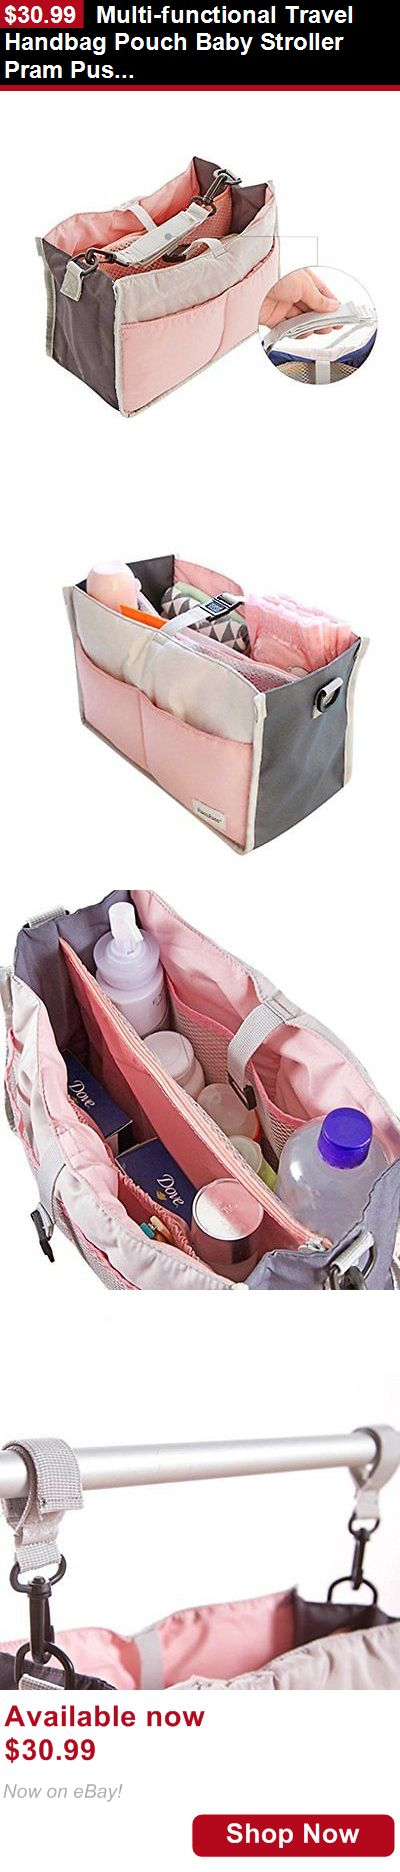 Organizers And Nets: Multi-Functional Travel Handbag Pouch Baby Stroller Pram Pushchair Hang Storage BUY IT NOW ONLY: $30.99